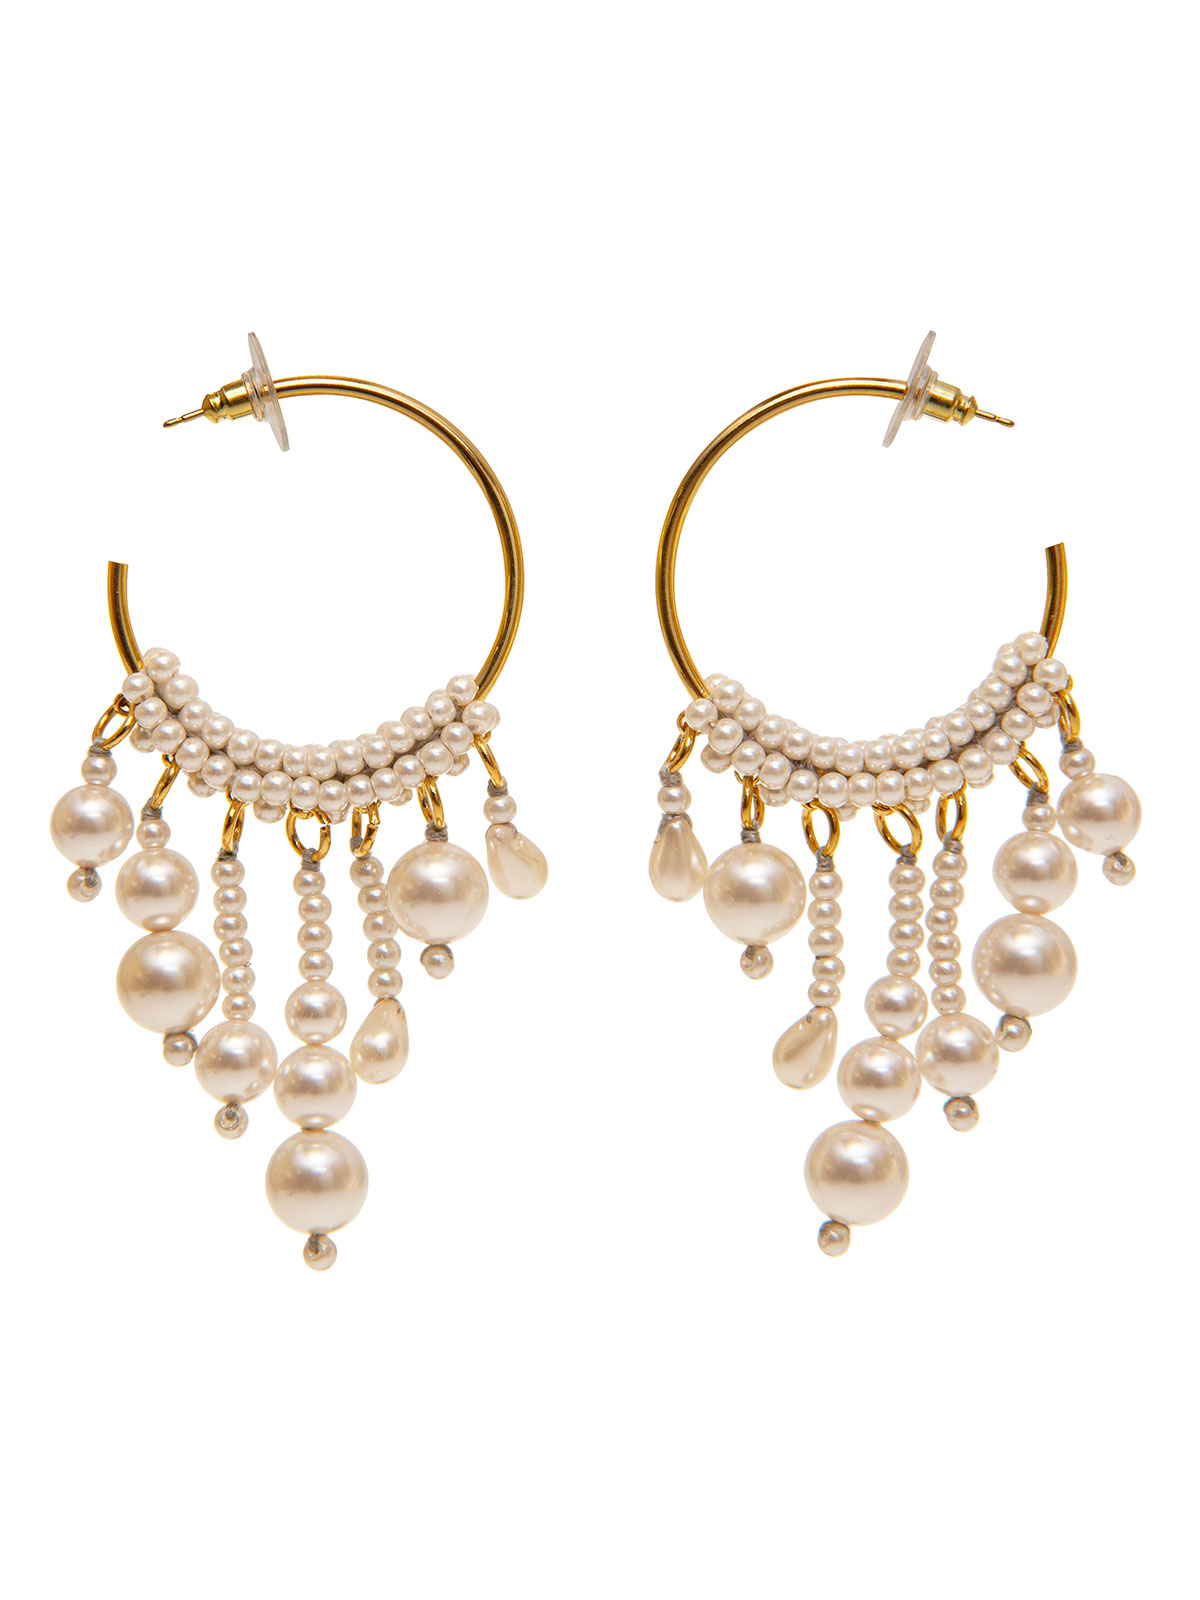 Hoop earrings with pendent beads and pearls